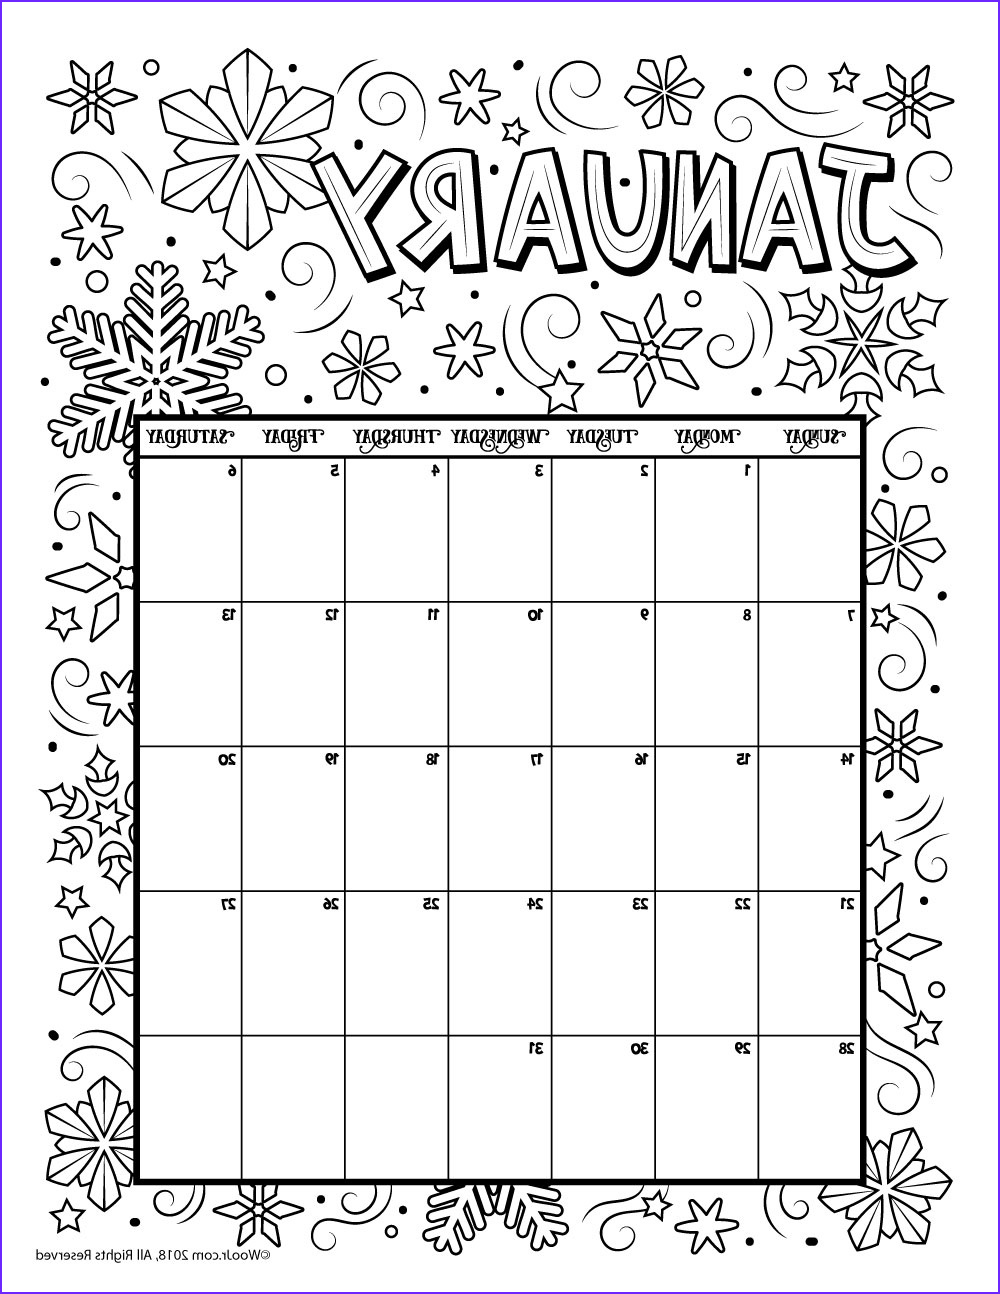 Calendar Coloring Luxury Image January 2018 Coloring Calendar Page